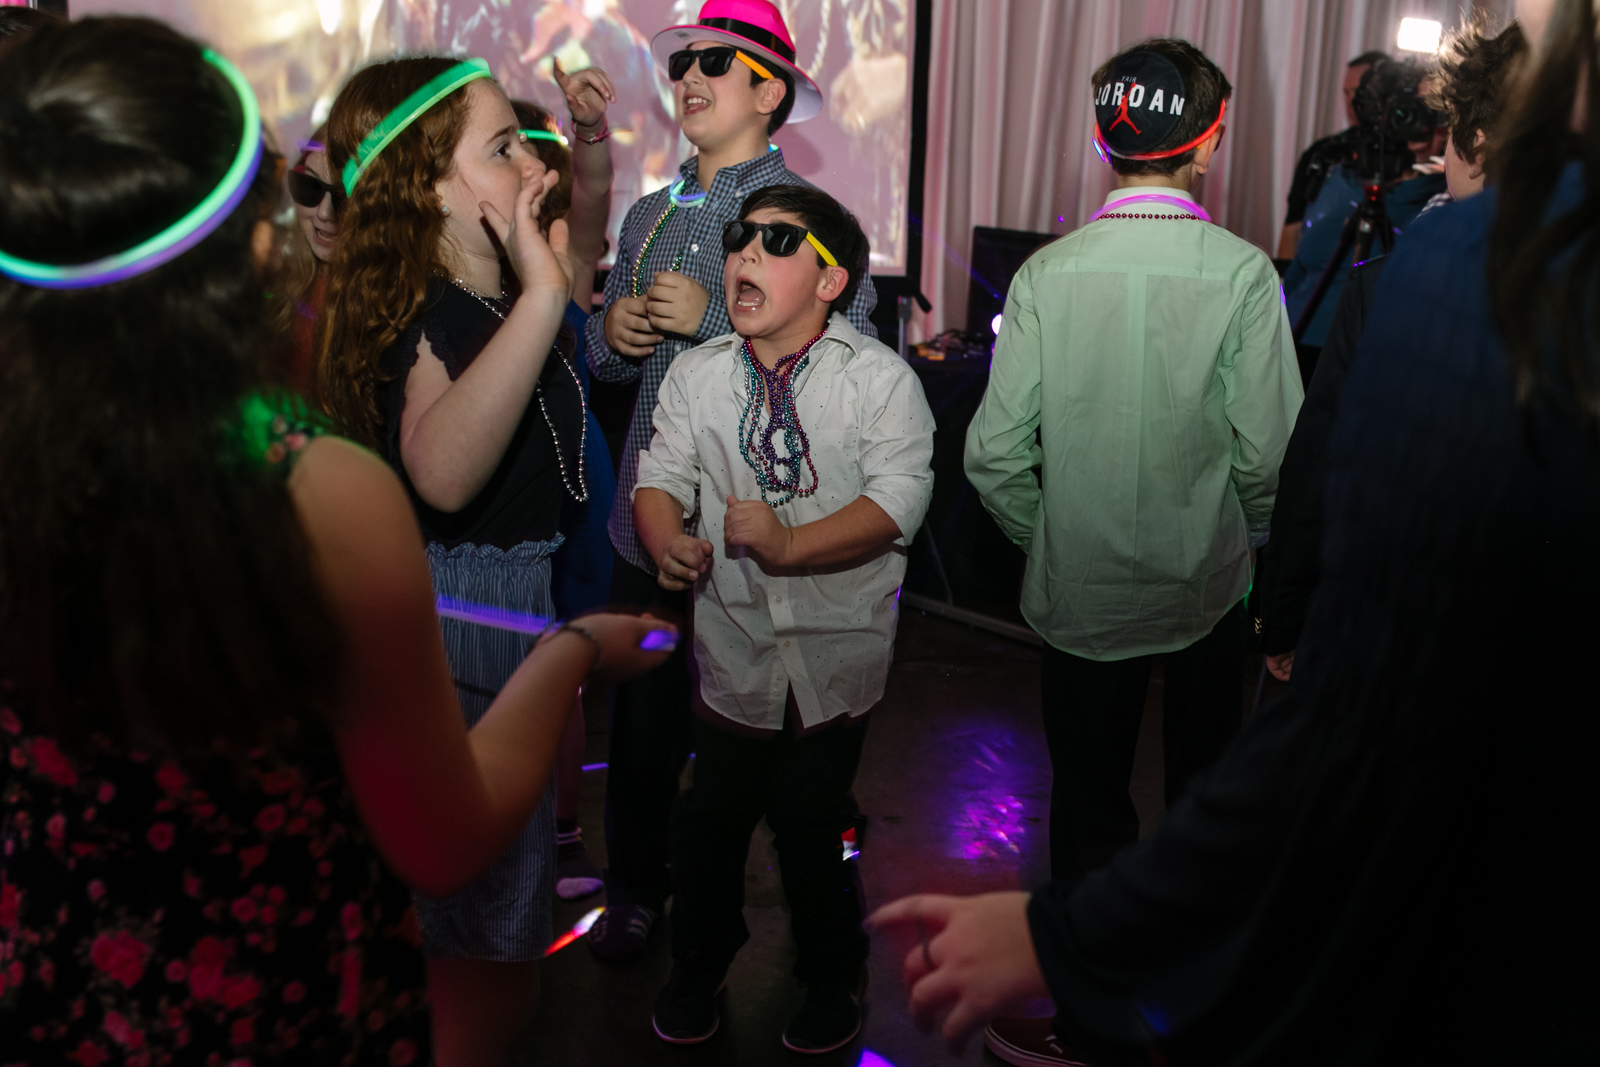 A boy wearing sunglasses and beads dances with others during a bat mitzvah